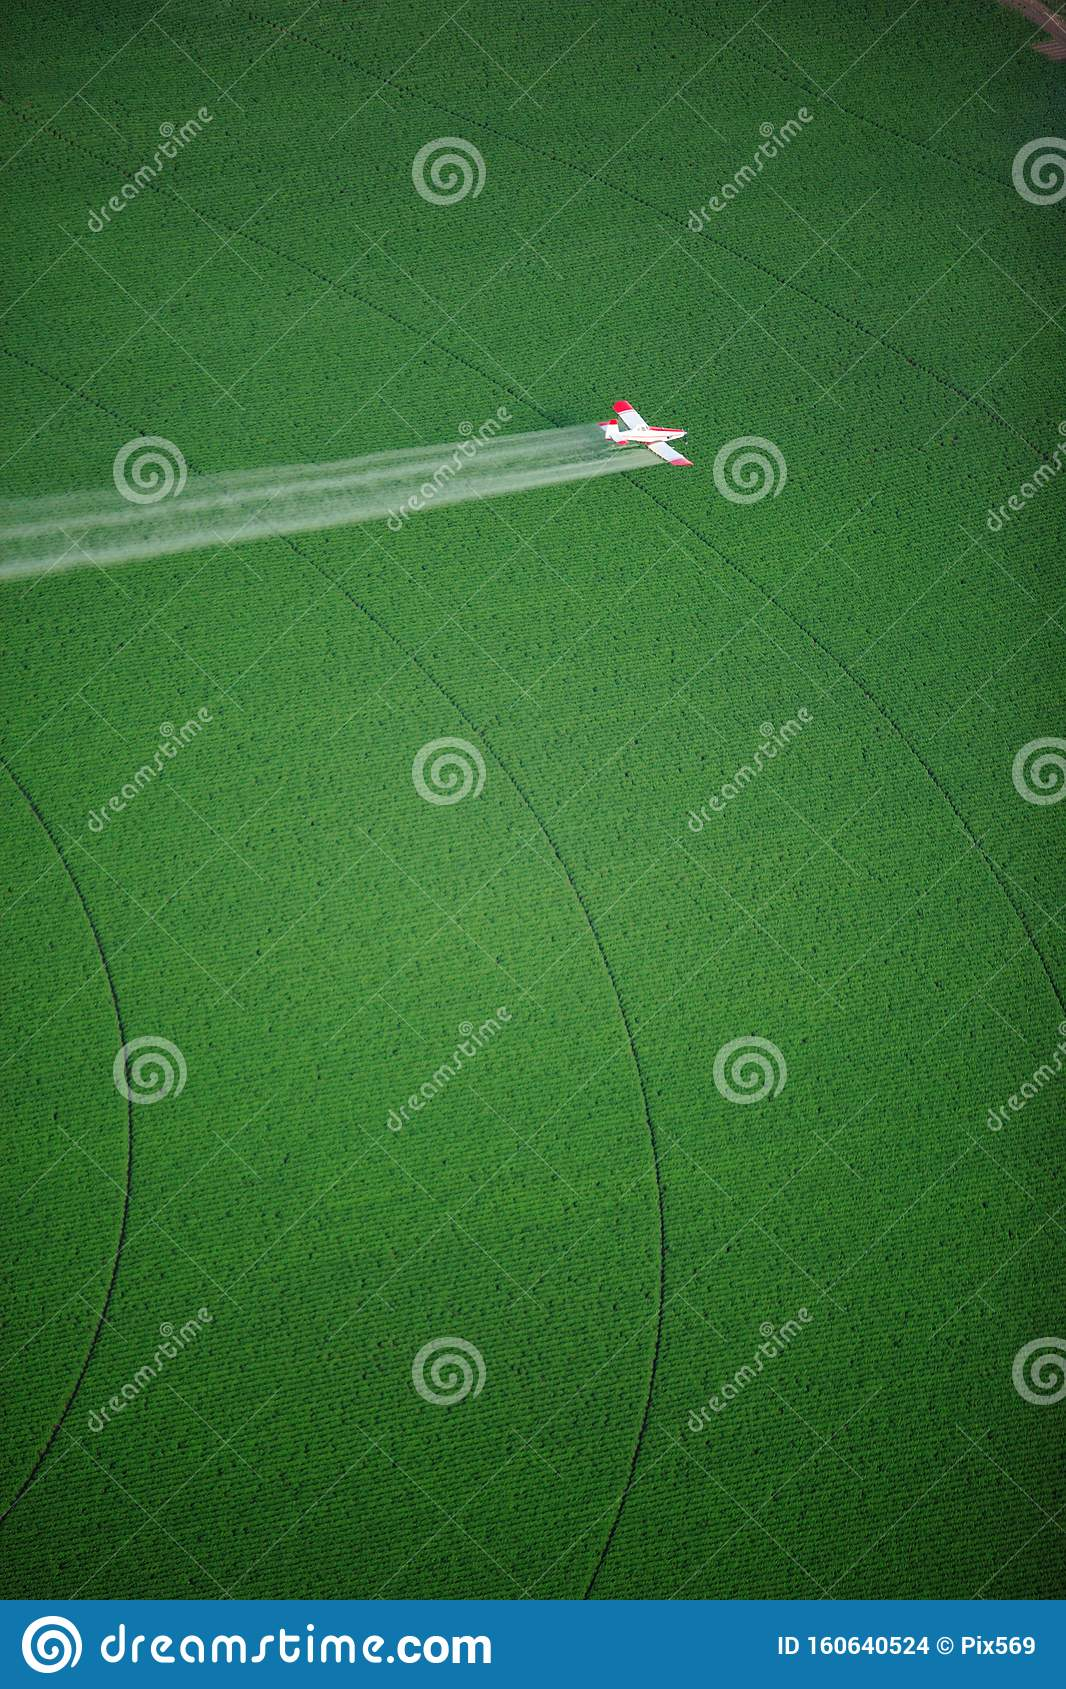 A Crop Duster Spraying A Green Farm Field. Stock Photo